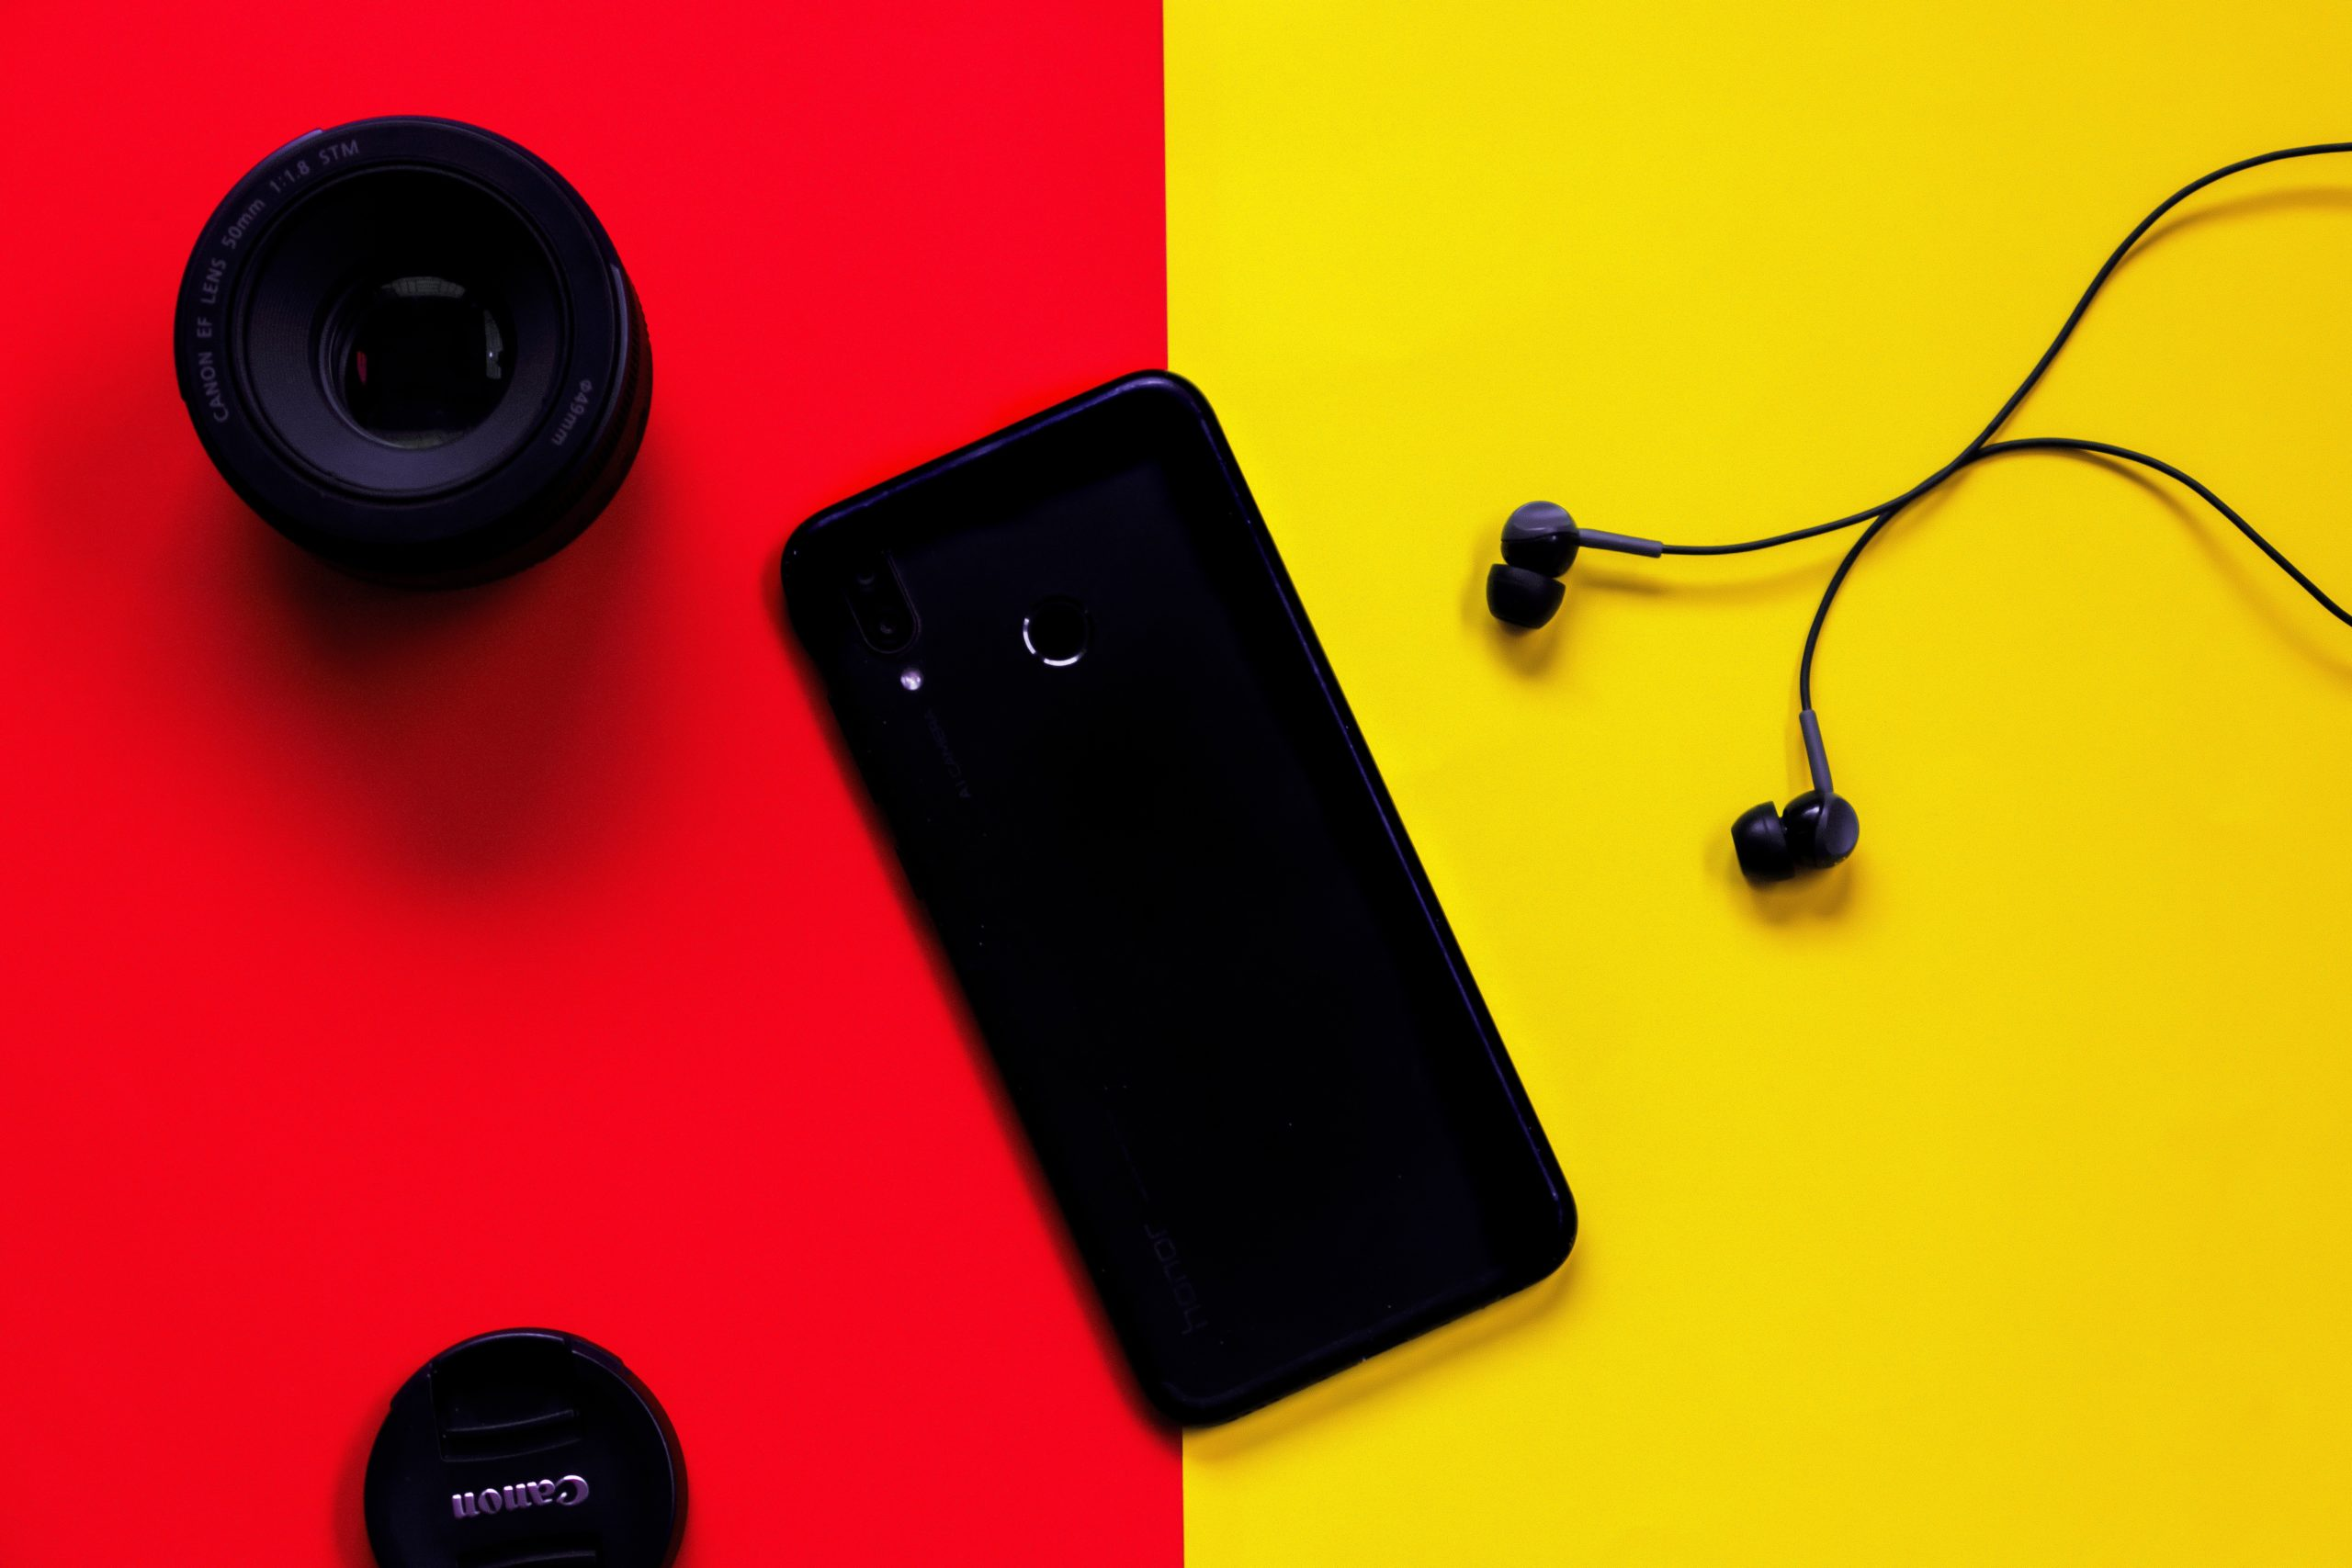 https://www.pexels.com/photo/black-smartphone-besides-earphones-and-camera-lens-2769274/